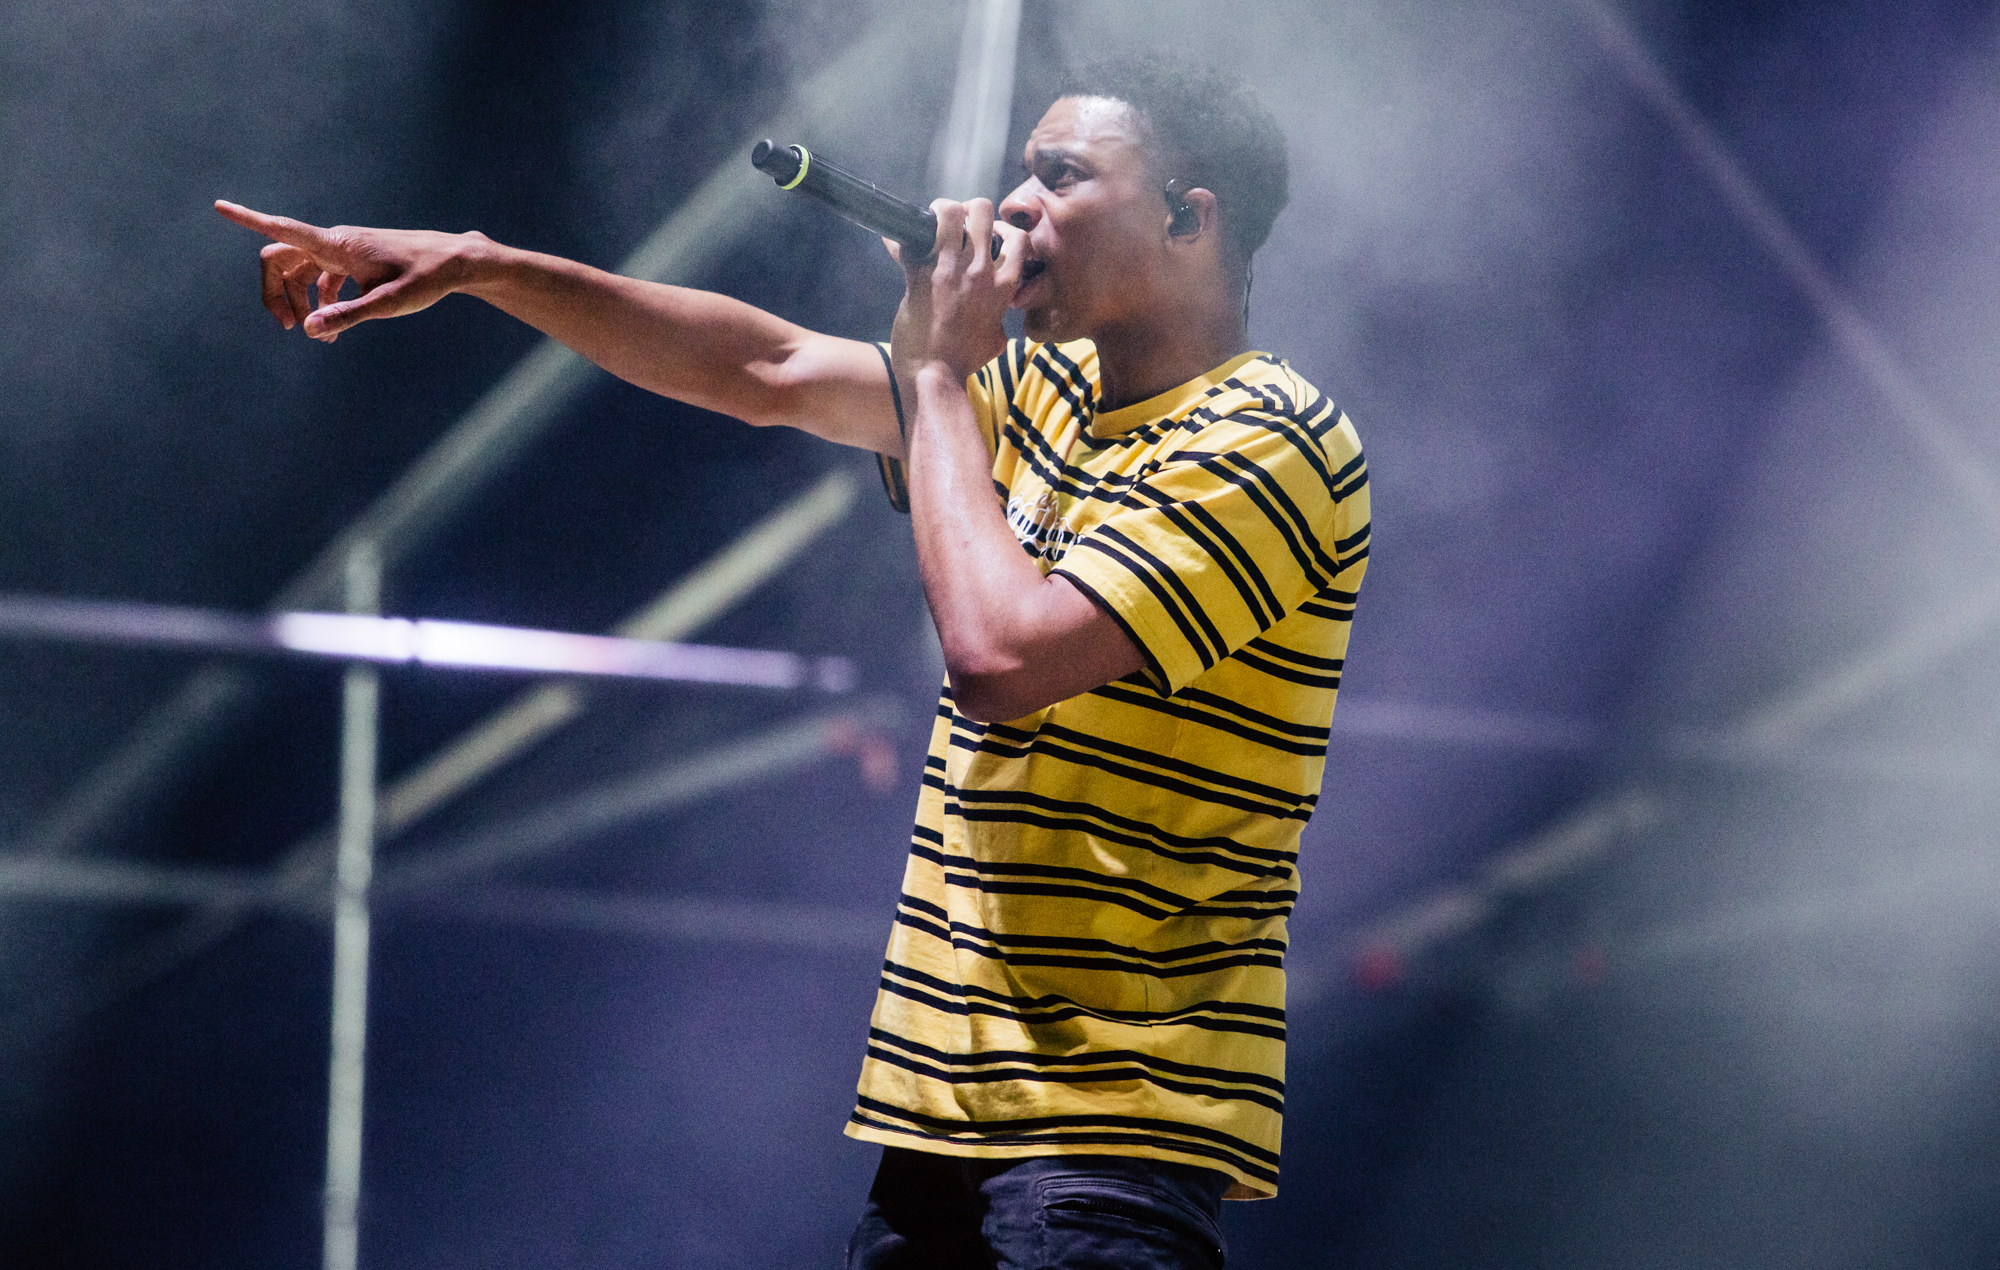 Vince Staples debuts 'The Vince Staples Show' with new song, 'So What?'